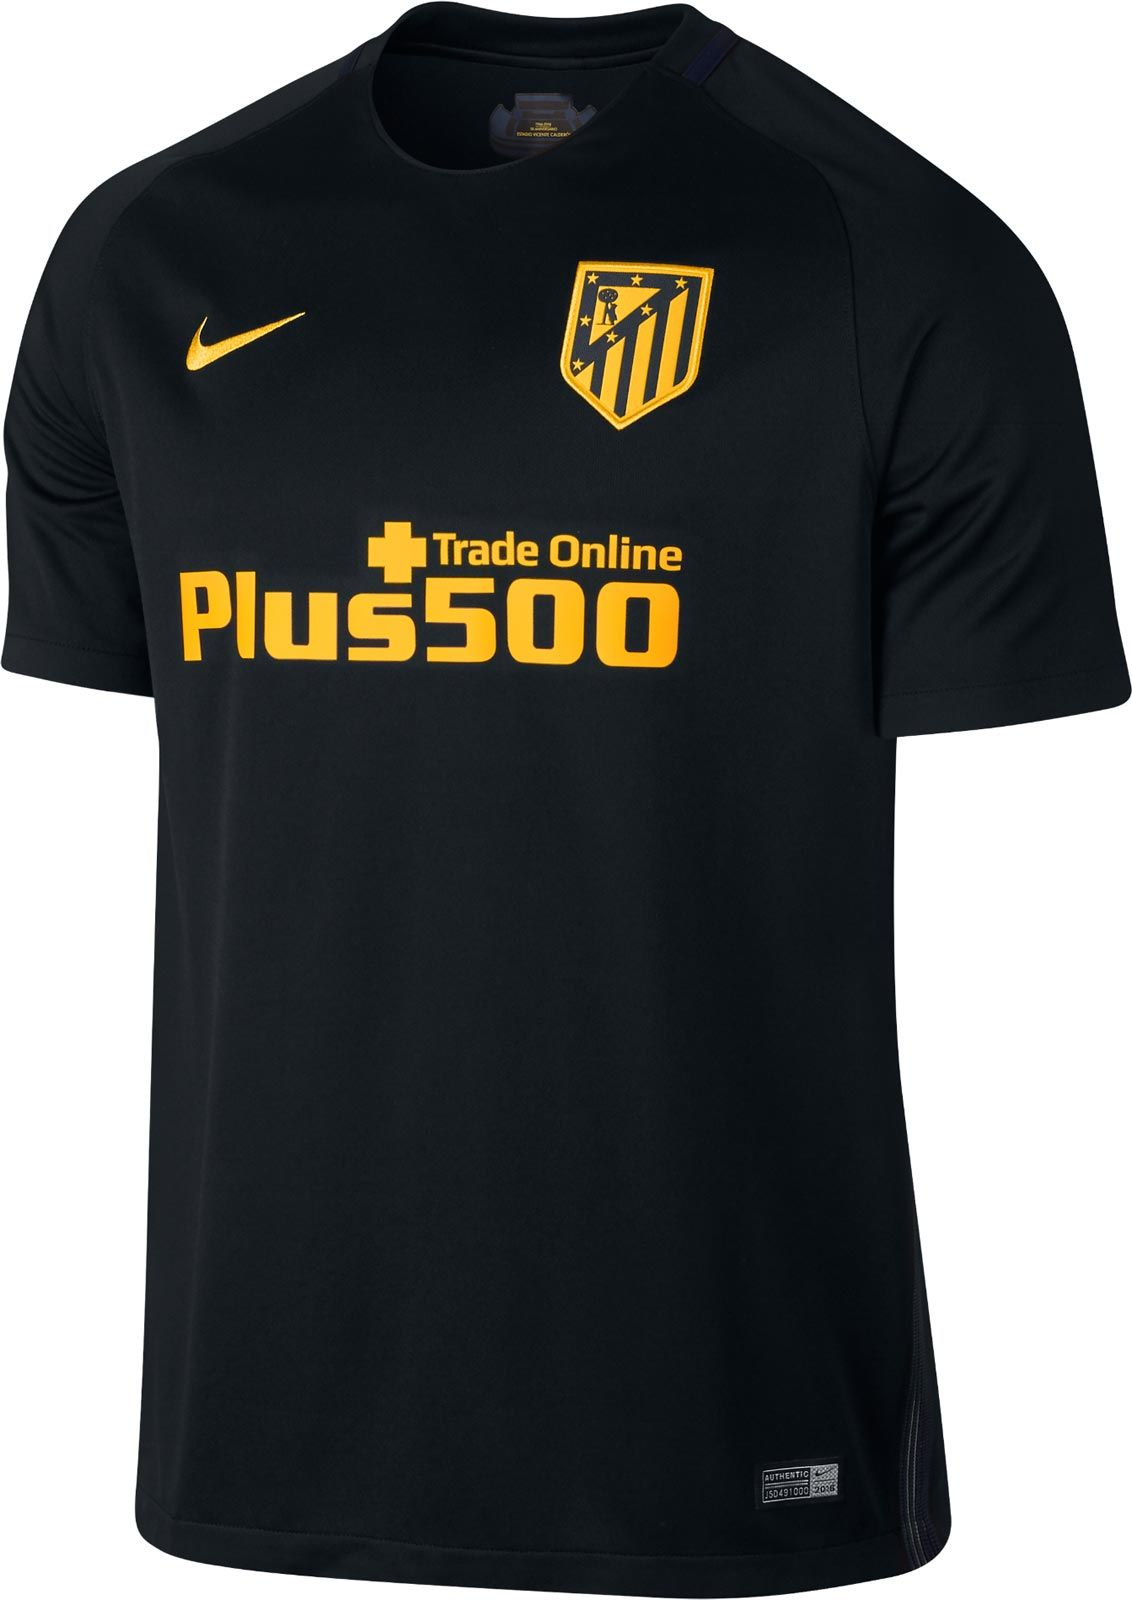 The new Atletico Madrid 16-17 away kit introduces a classy design in black  and gold. 5d0d3f92485